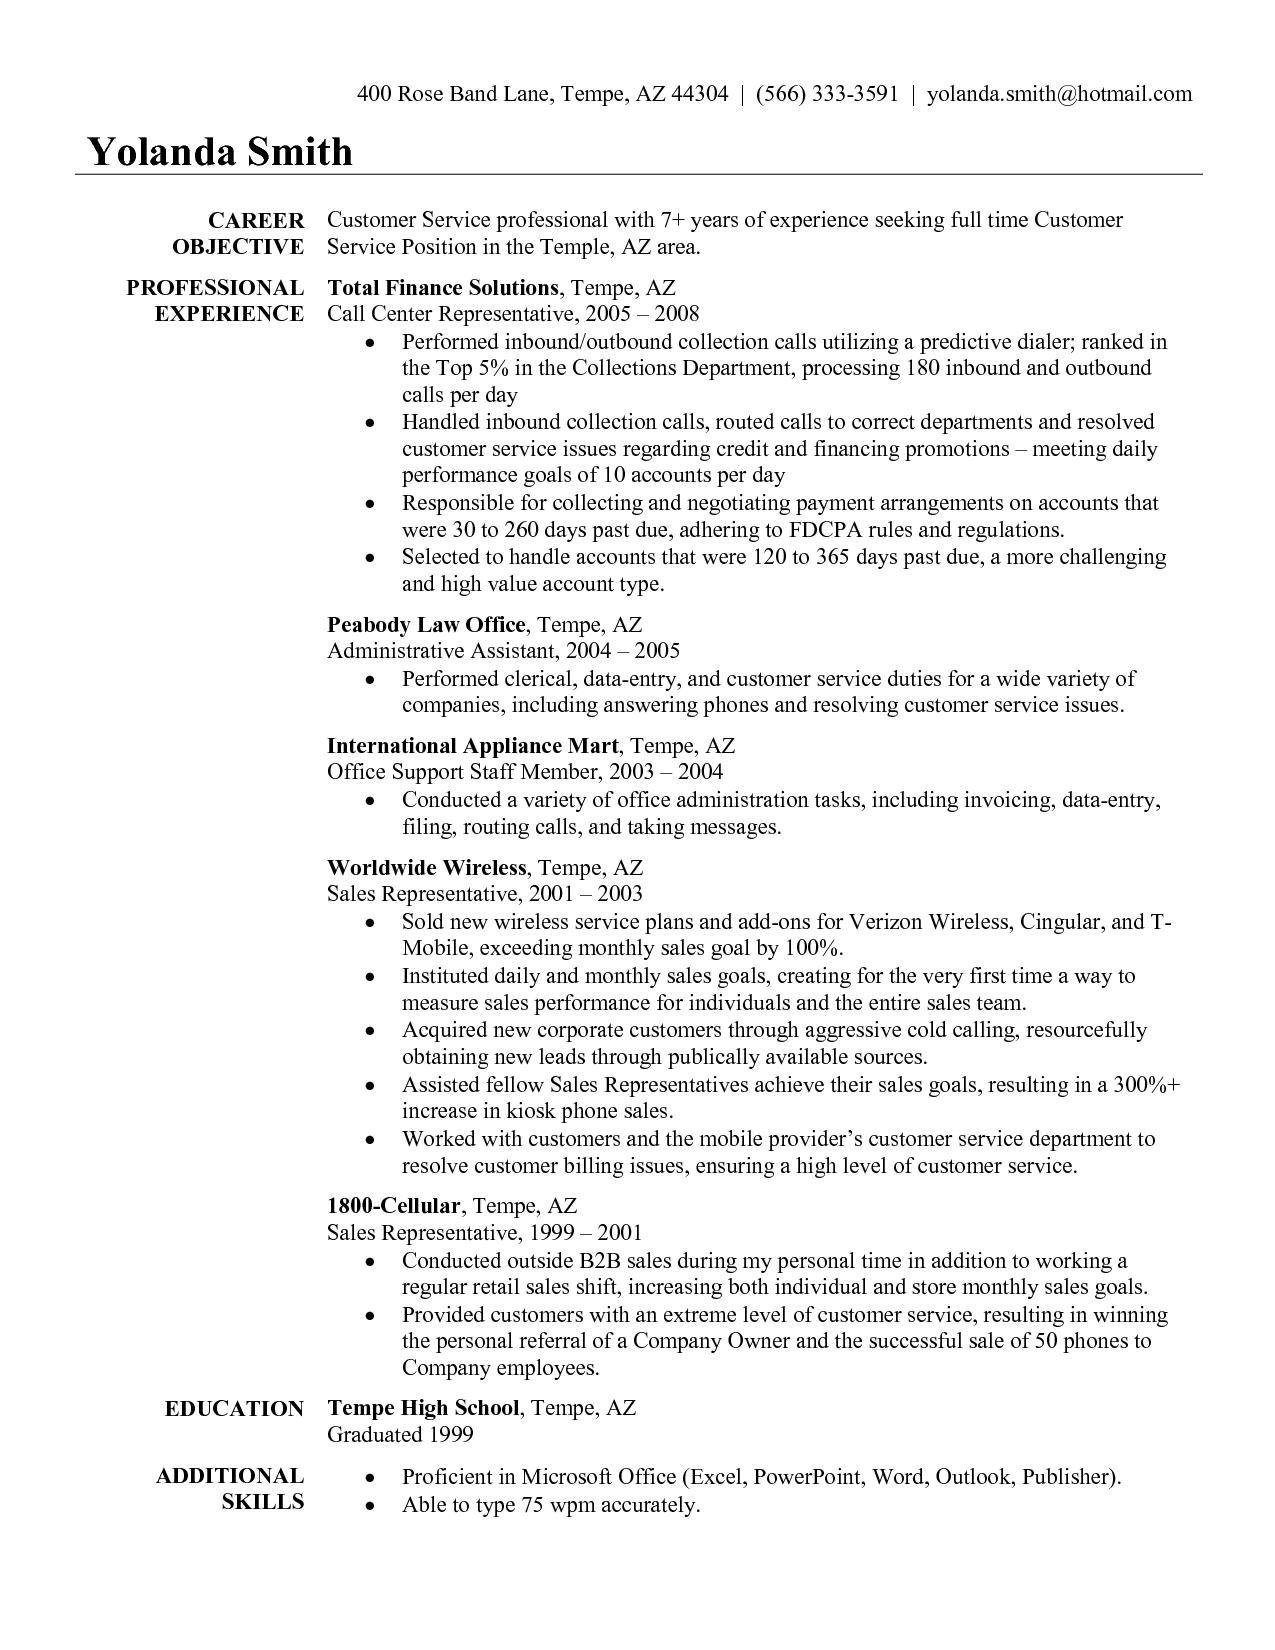 Resume Samples For Customer Service Representative revenue auditor – Resume for Customer Service Rep